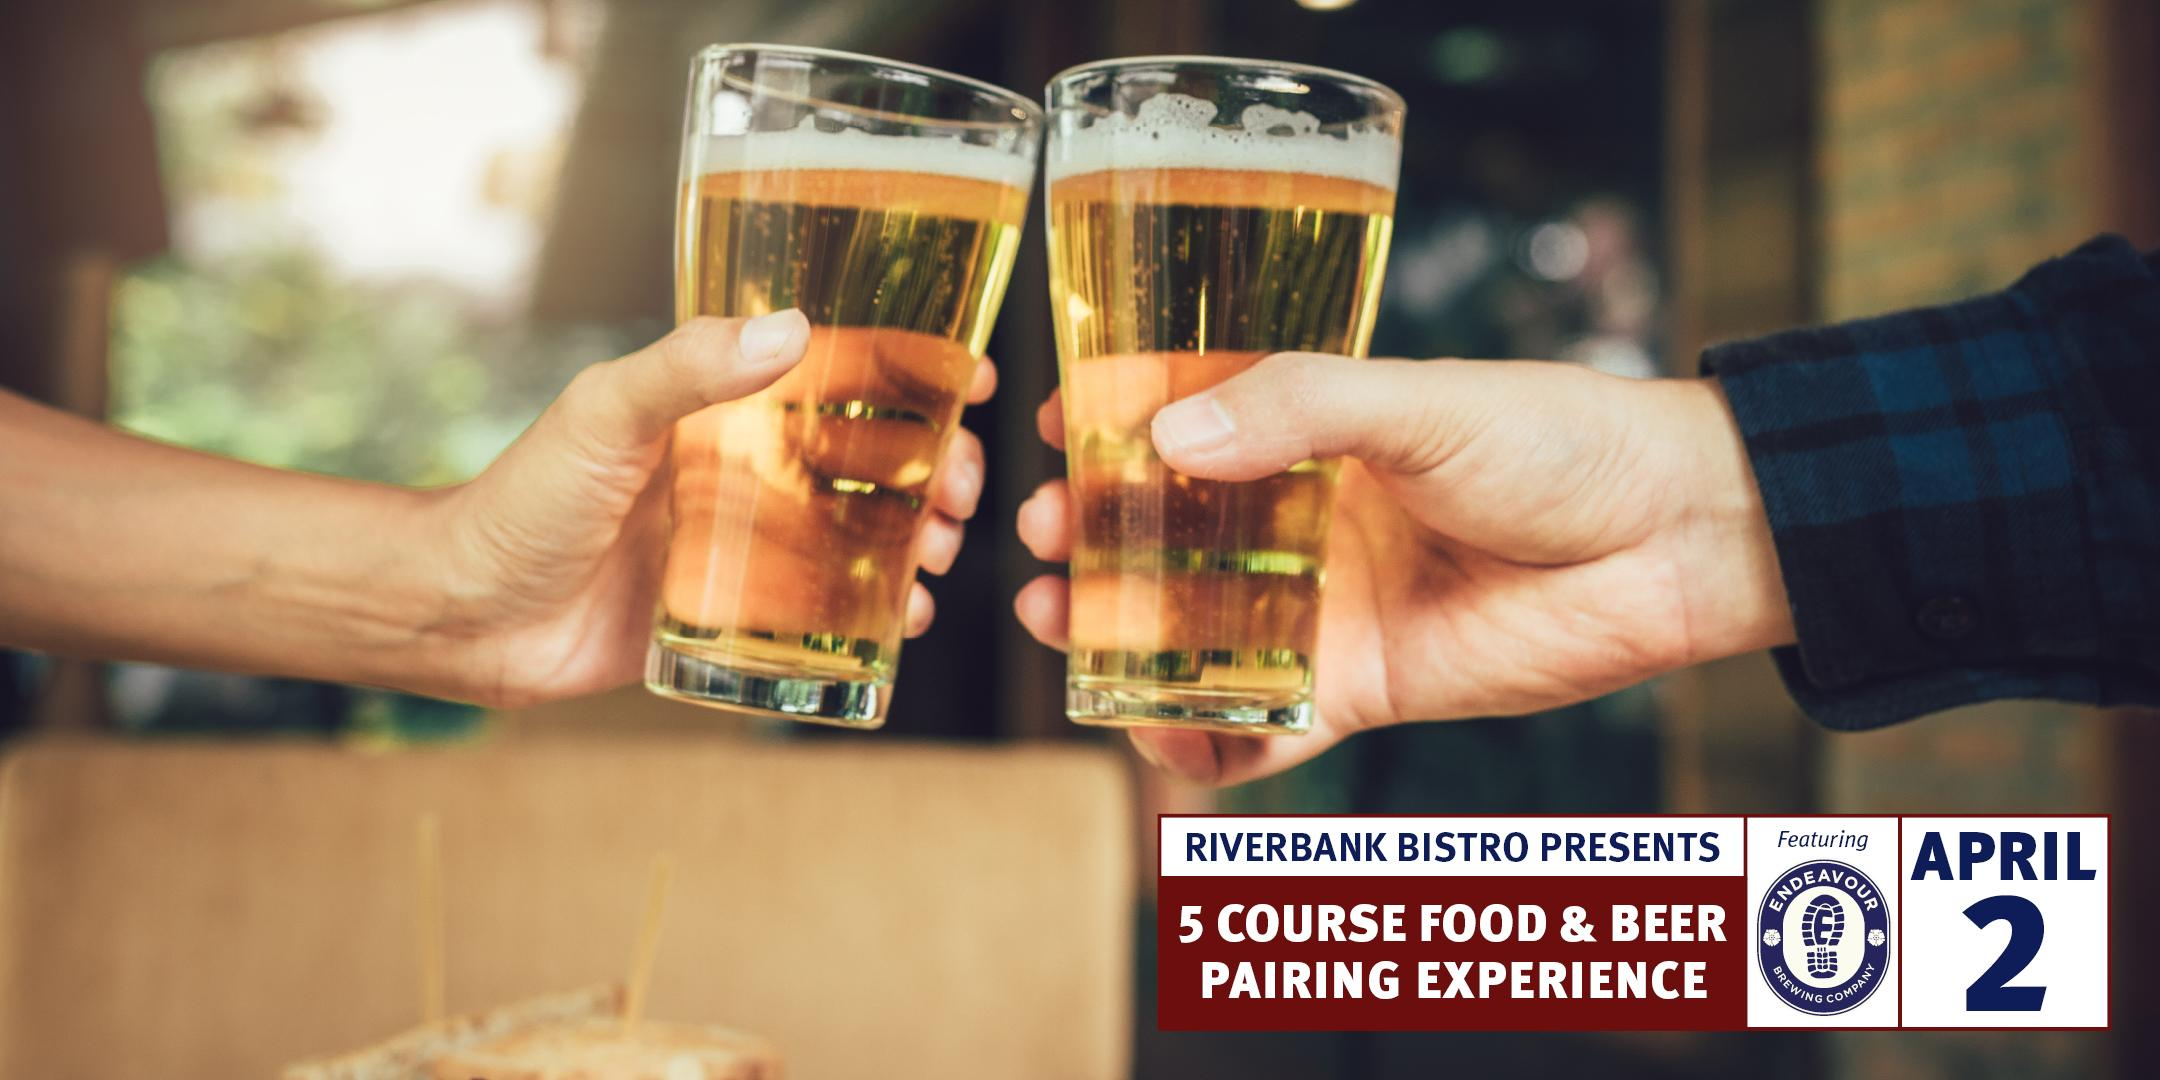 Five Course Food & Beer Pairing Experience